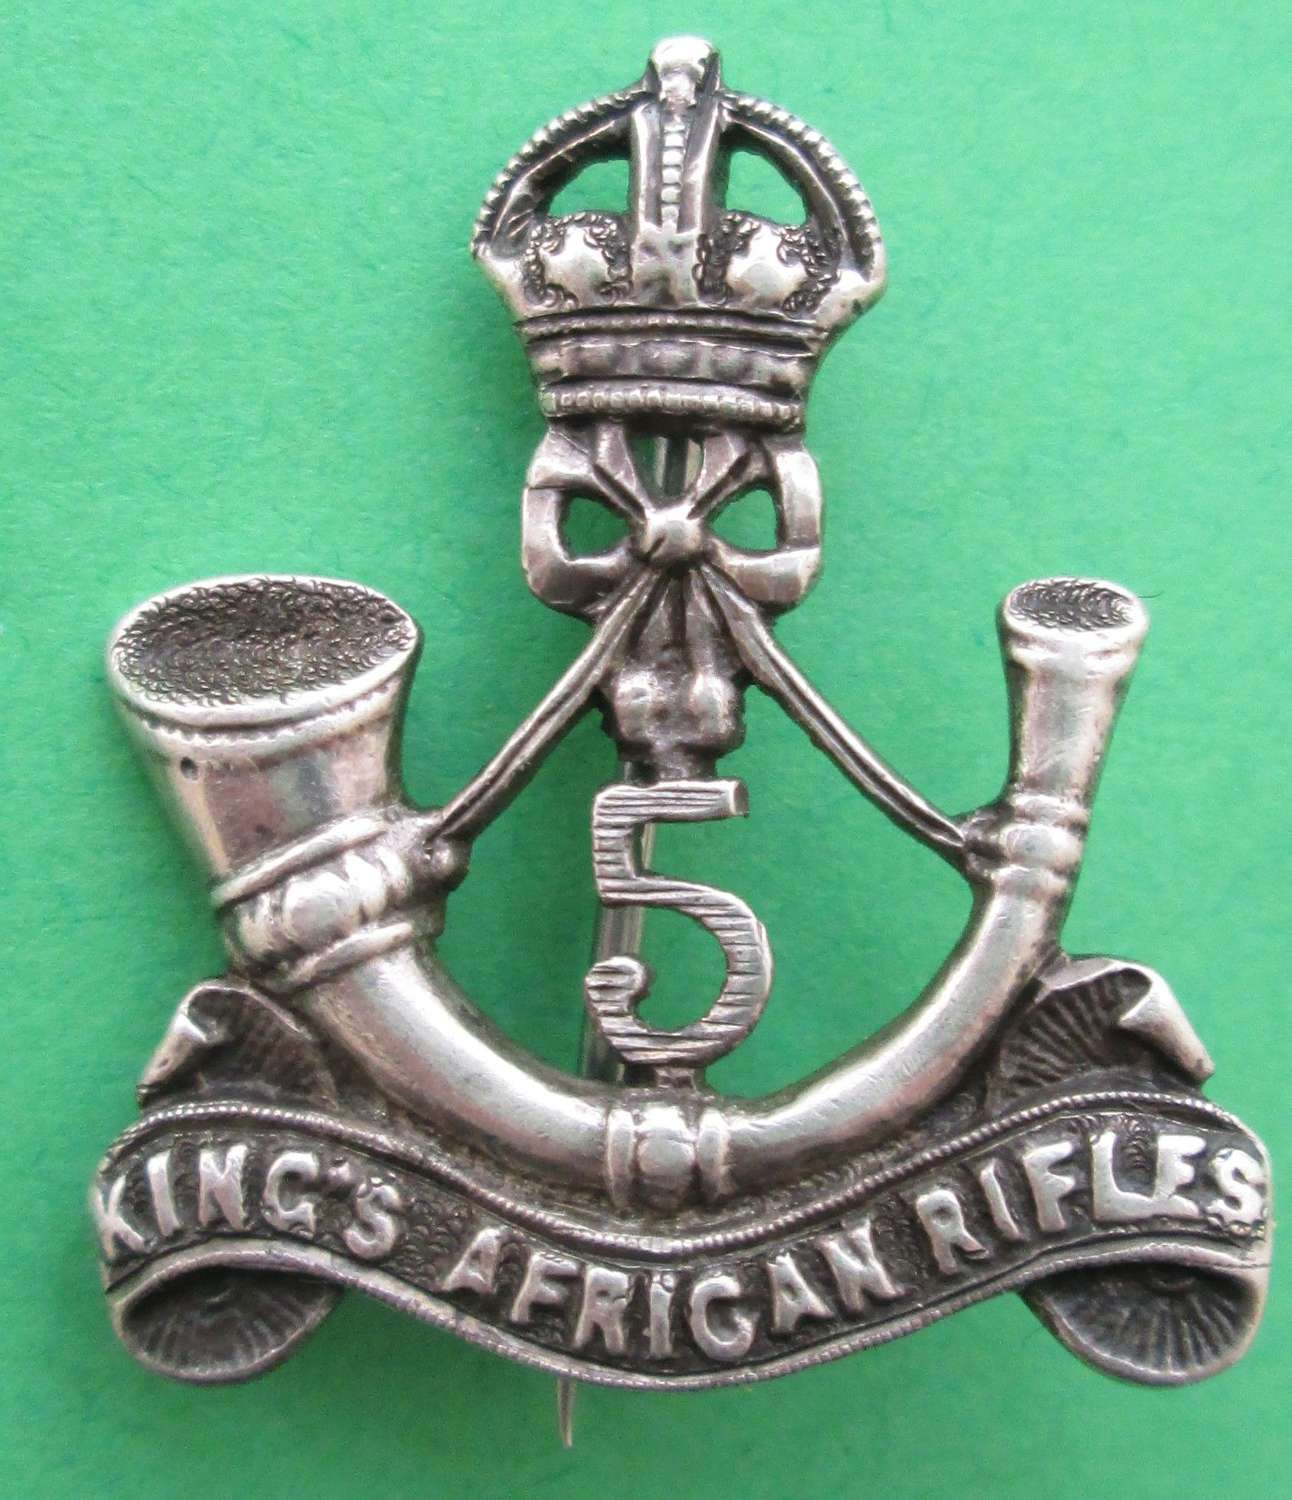 A KING'S 5TH AFRICAN RIFLES BROOCH